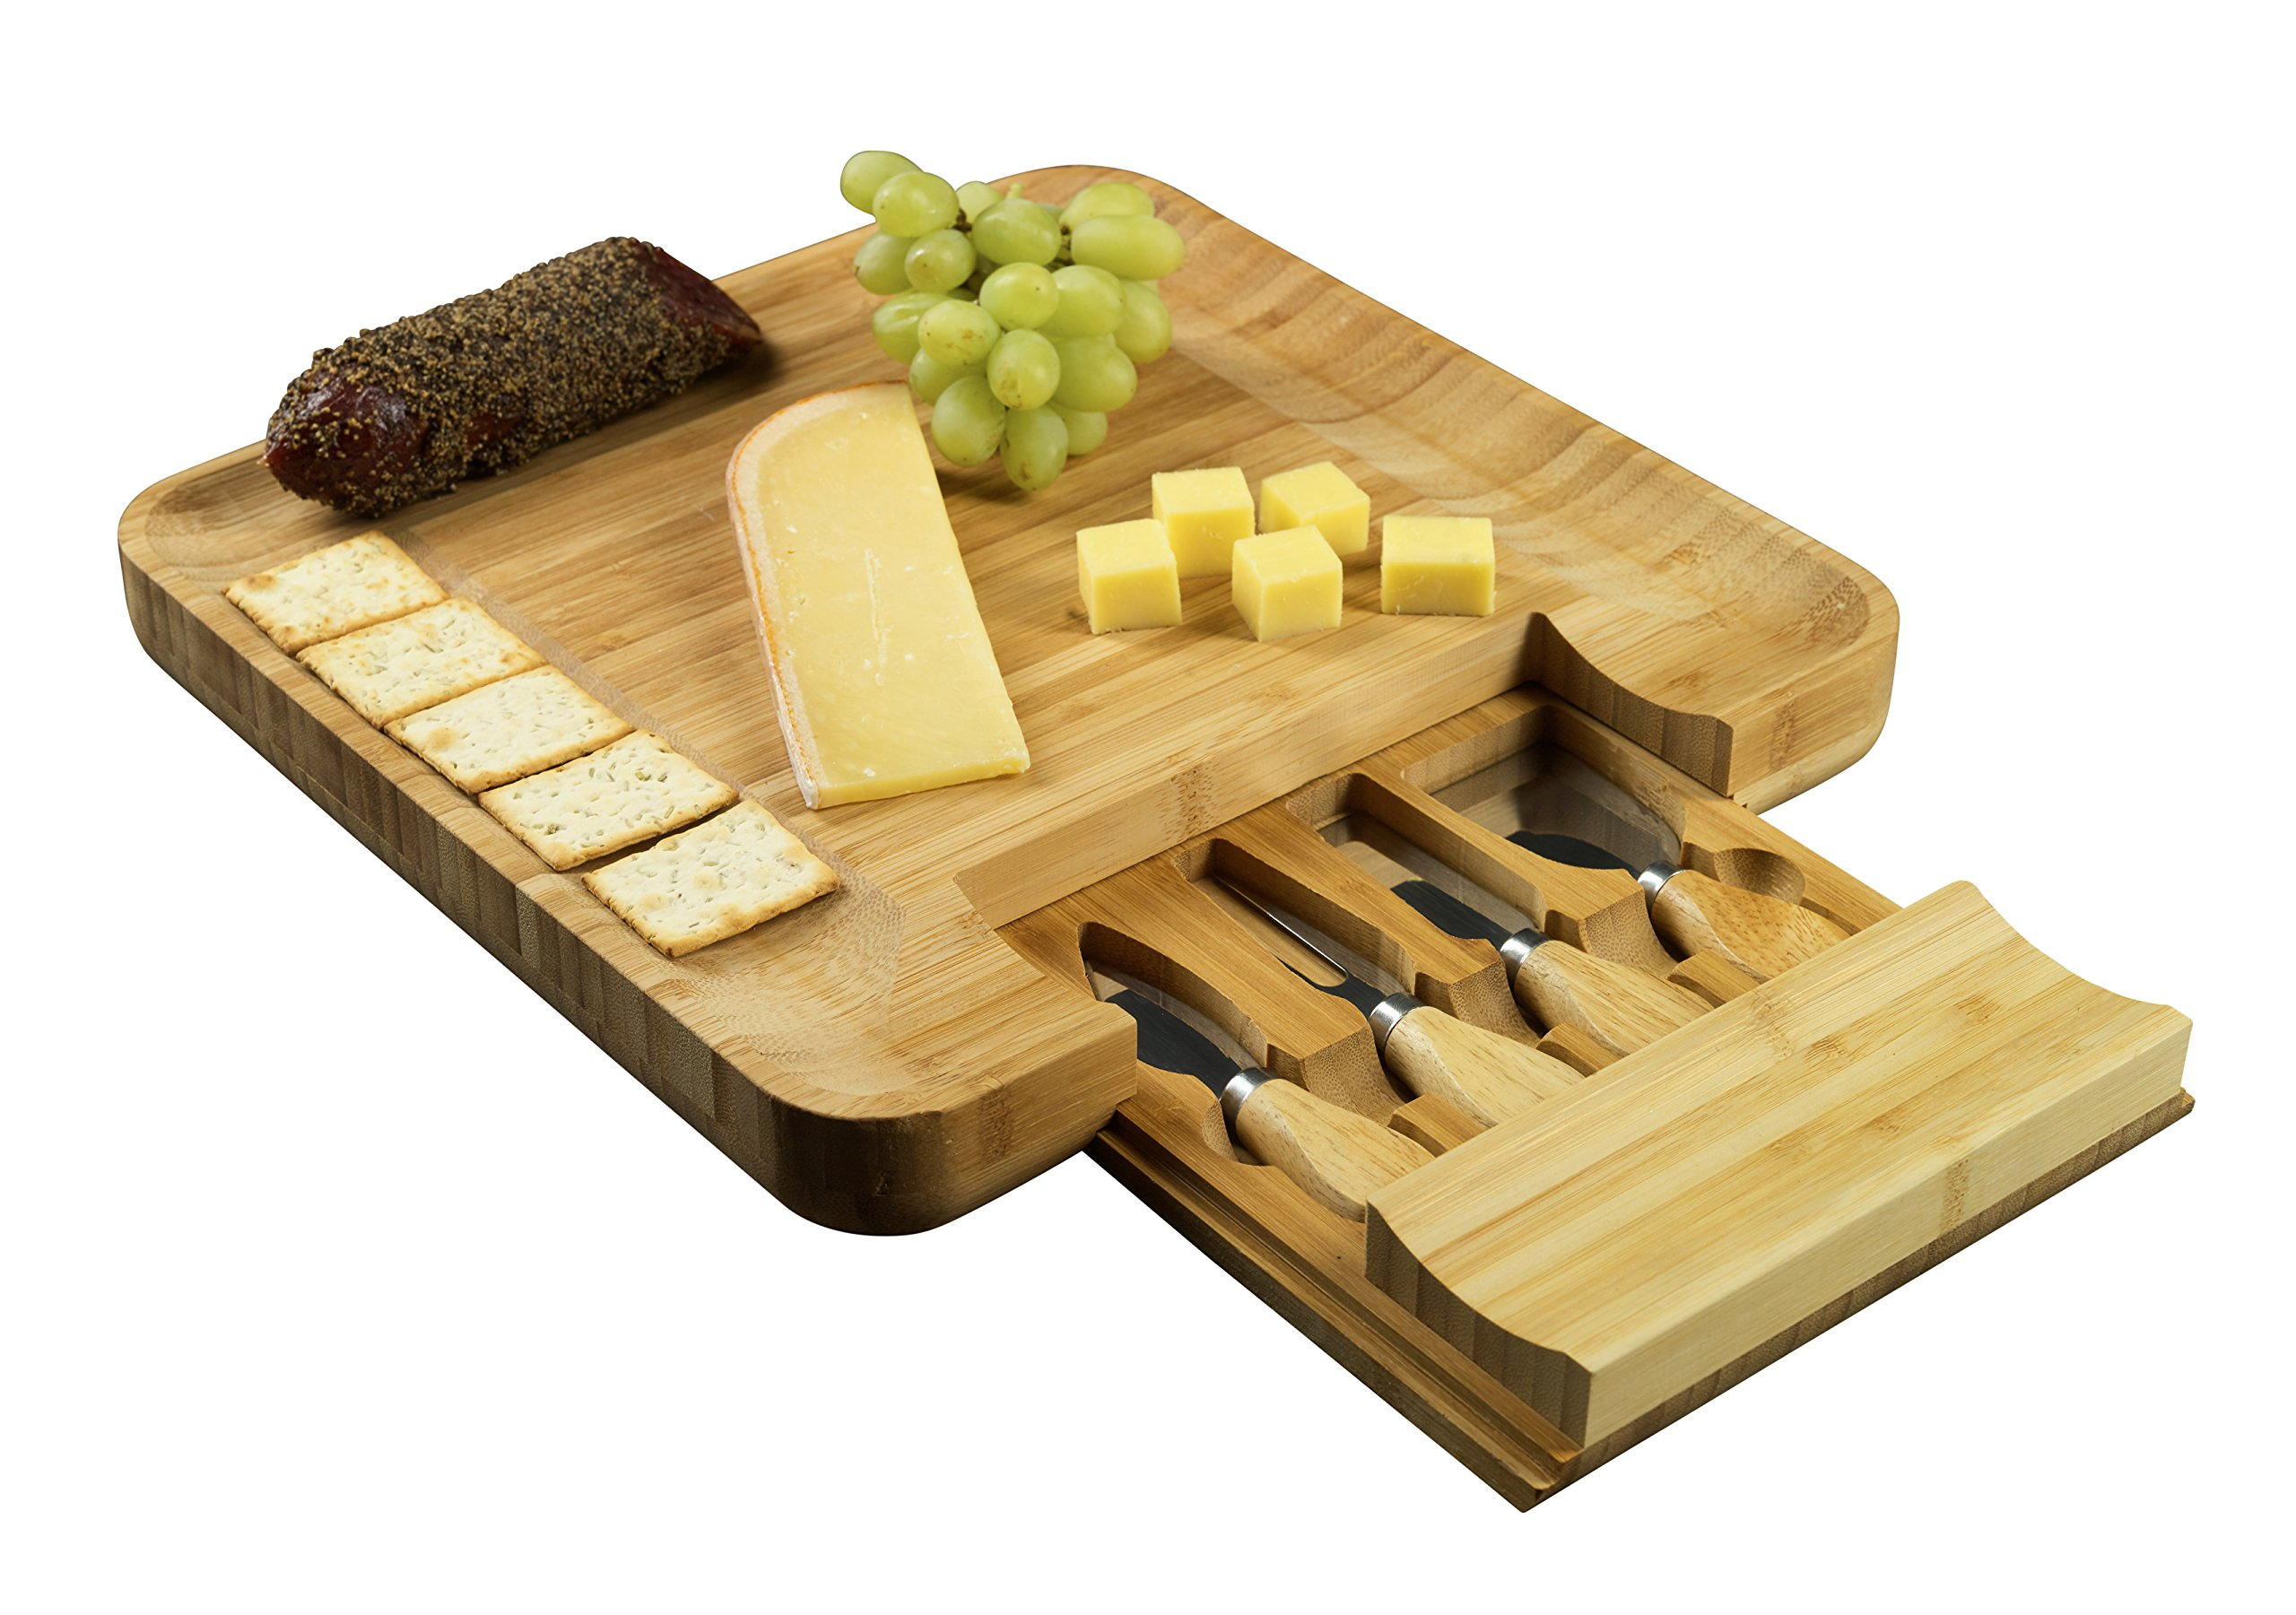 Bamboo Cheese Board and Cutlery Set, Meat and Charcuterie Wood Serving Tray with Slide-Out Drawer that holds 4 Stainless Steel Serving Knives and Utensils. Perfect for Cocktail Parties or as a Gift